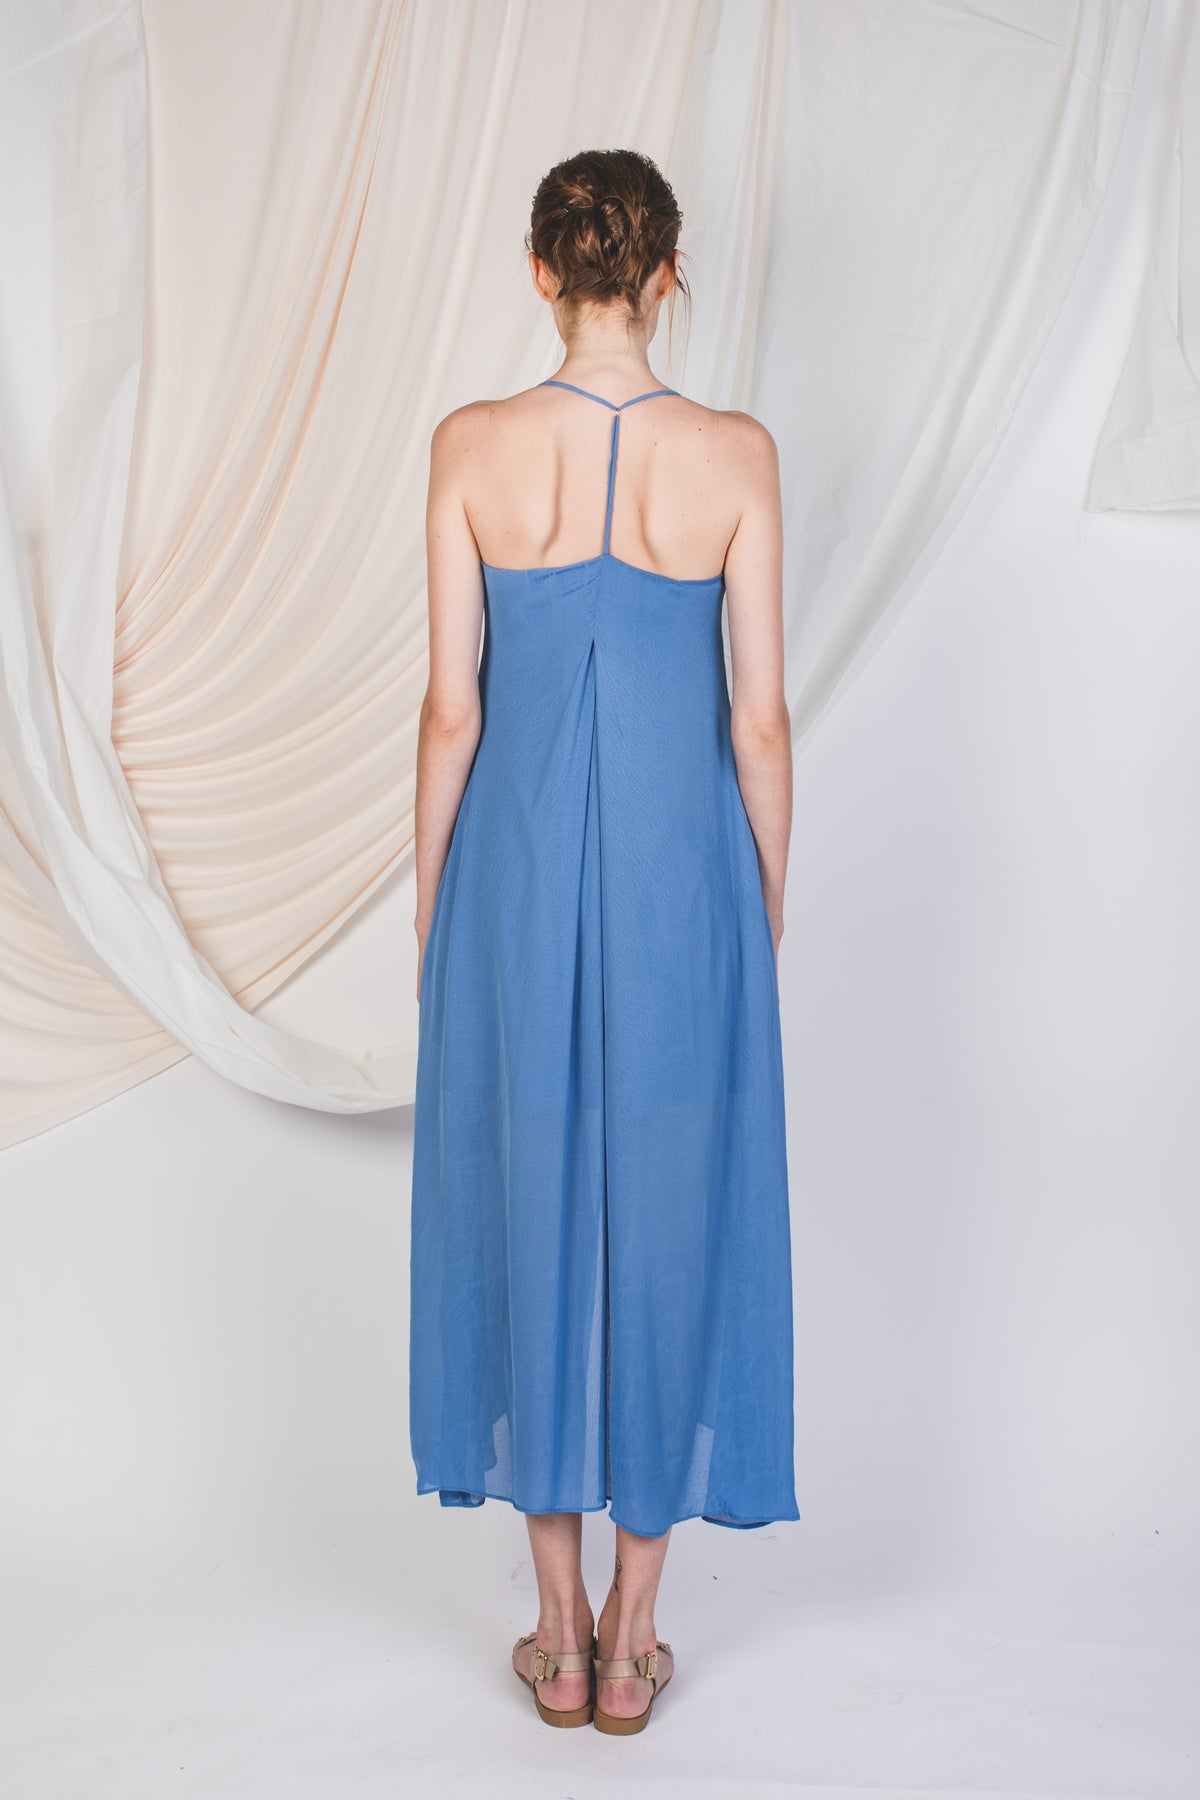 T-Back Printed Maxi Dress in Blue